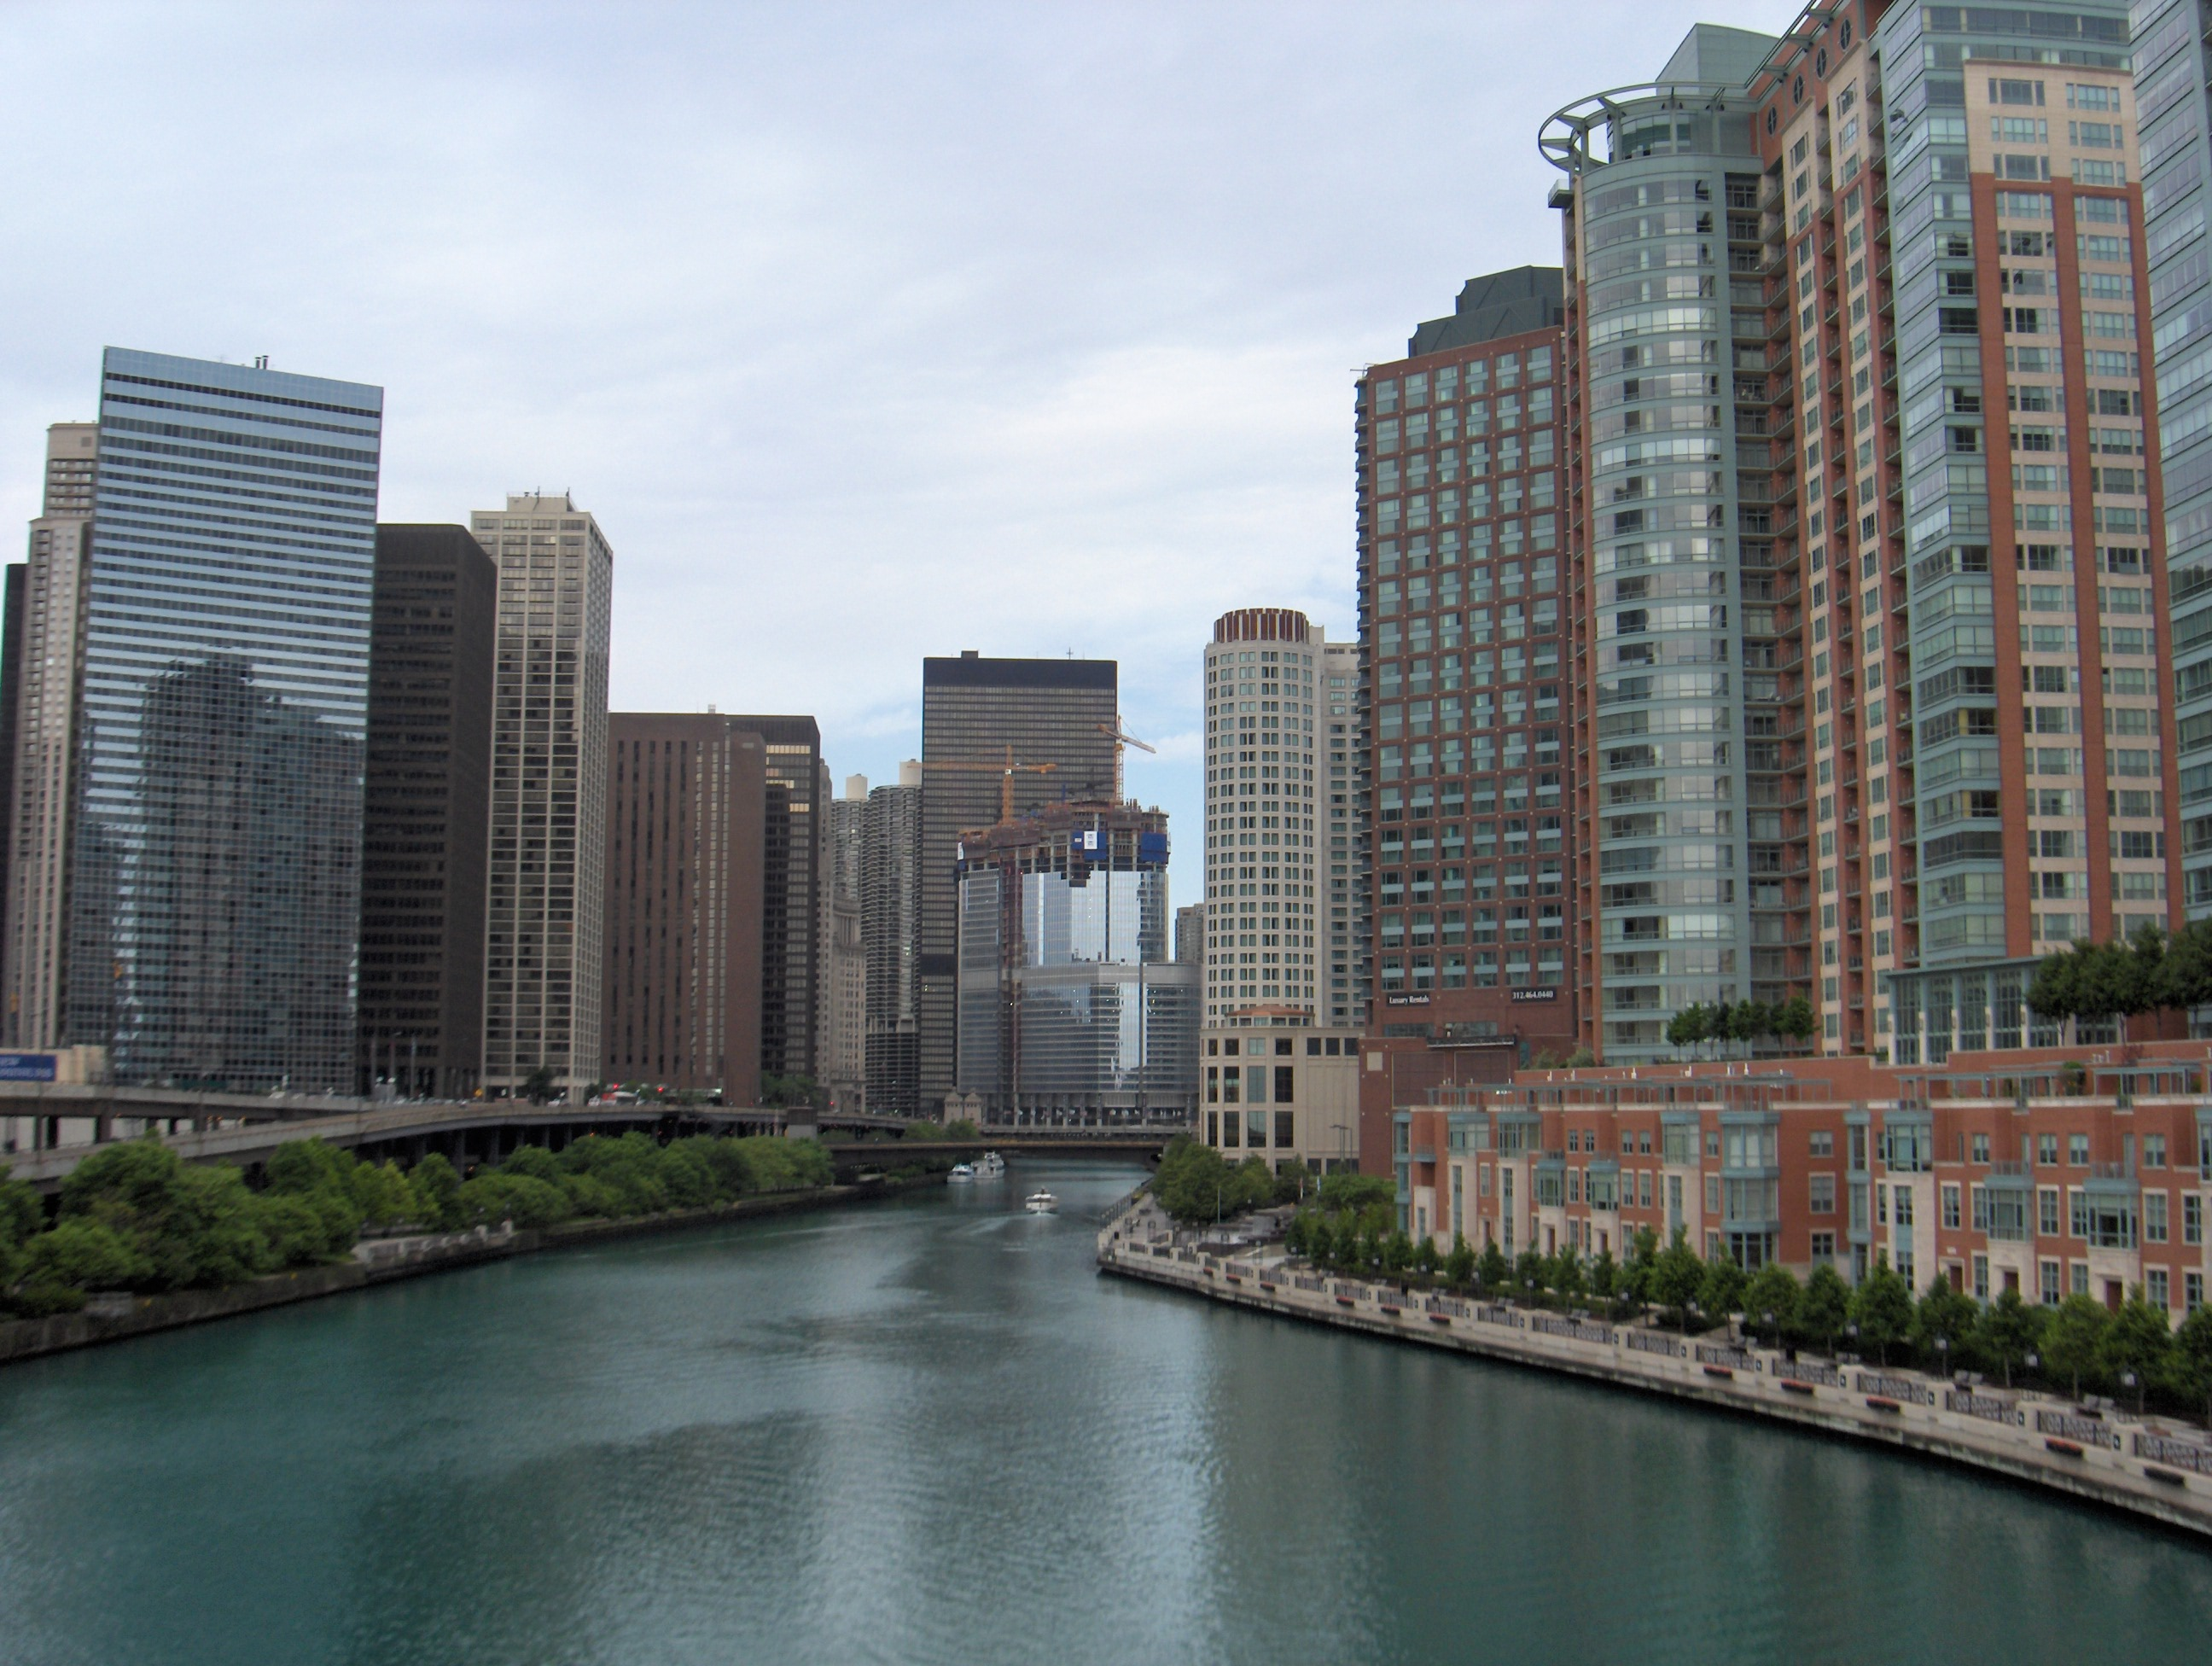 Trump Tower and Chicago River